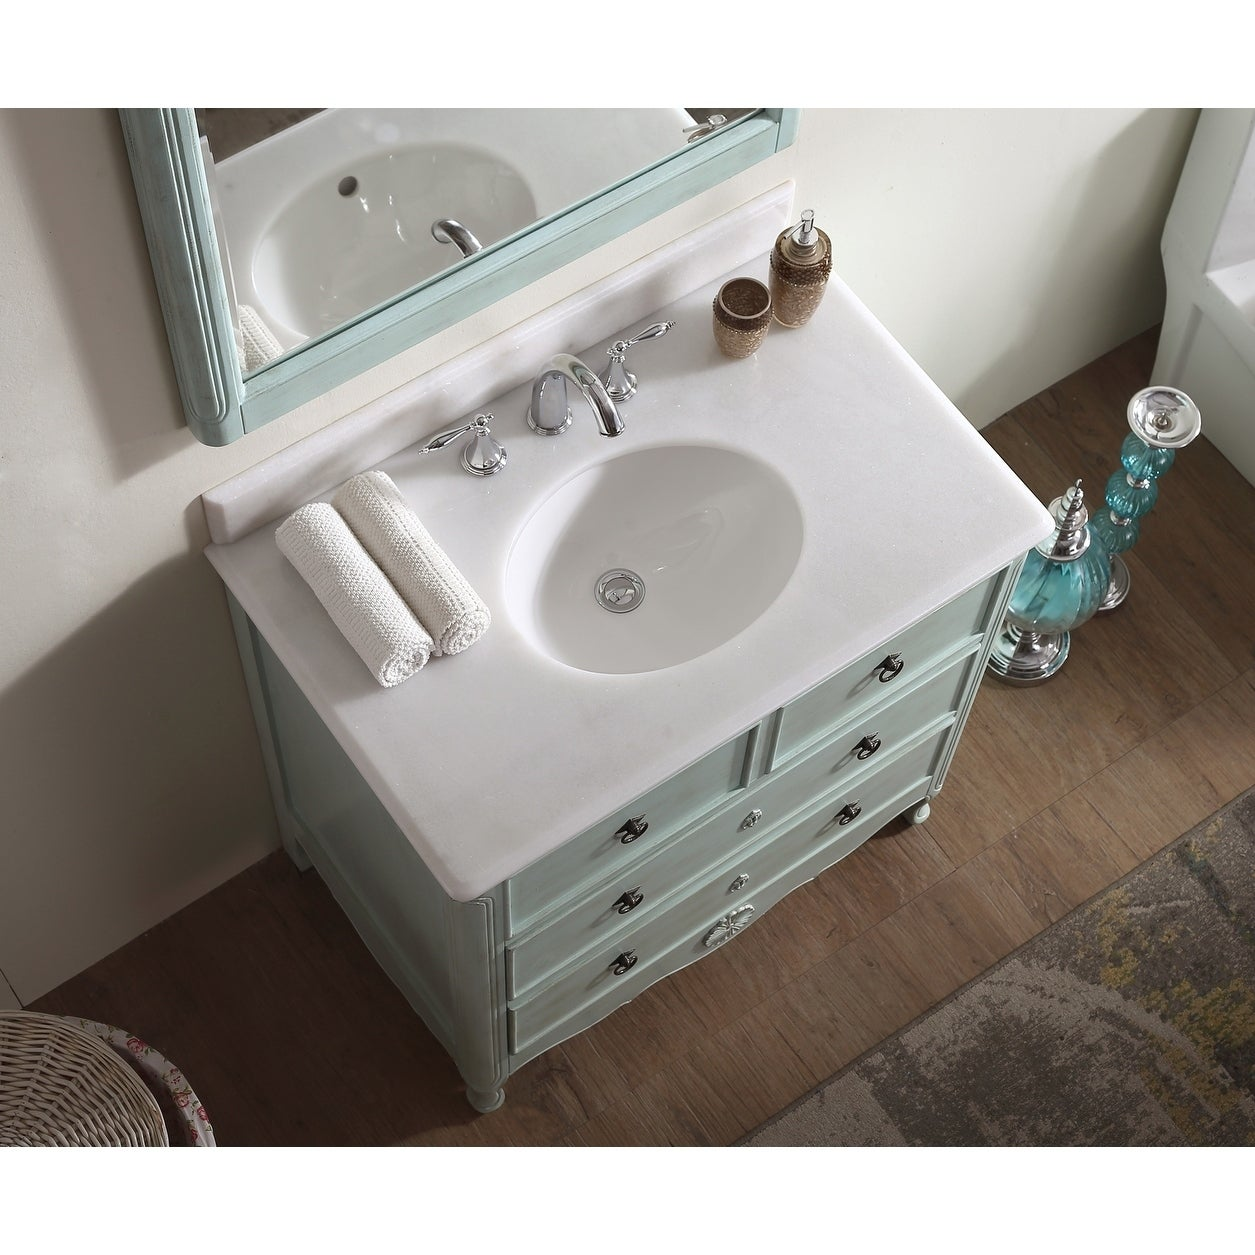 Genial Shop Modetti Provence 34 Inch Single Bathroom Vanity With Marble Top And  Mirror   Free Shipping Today   Overstock.com   17969221